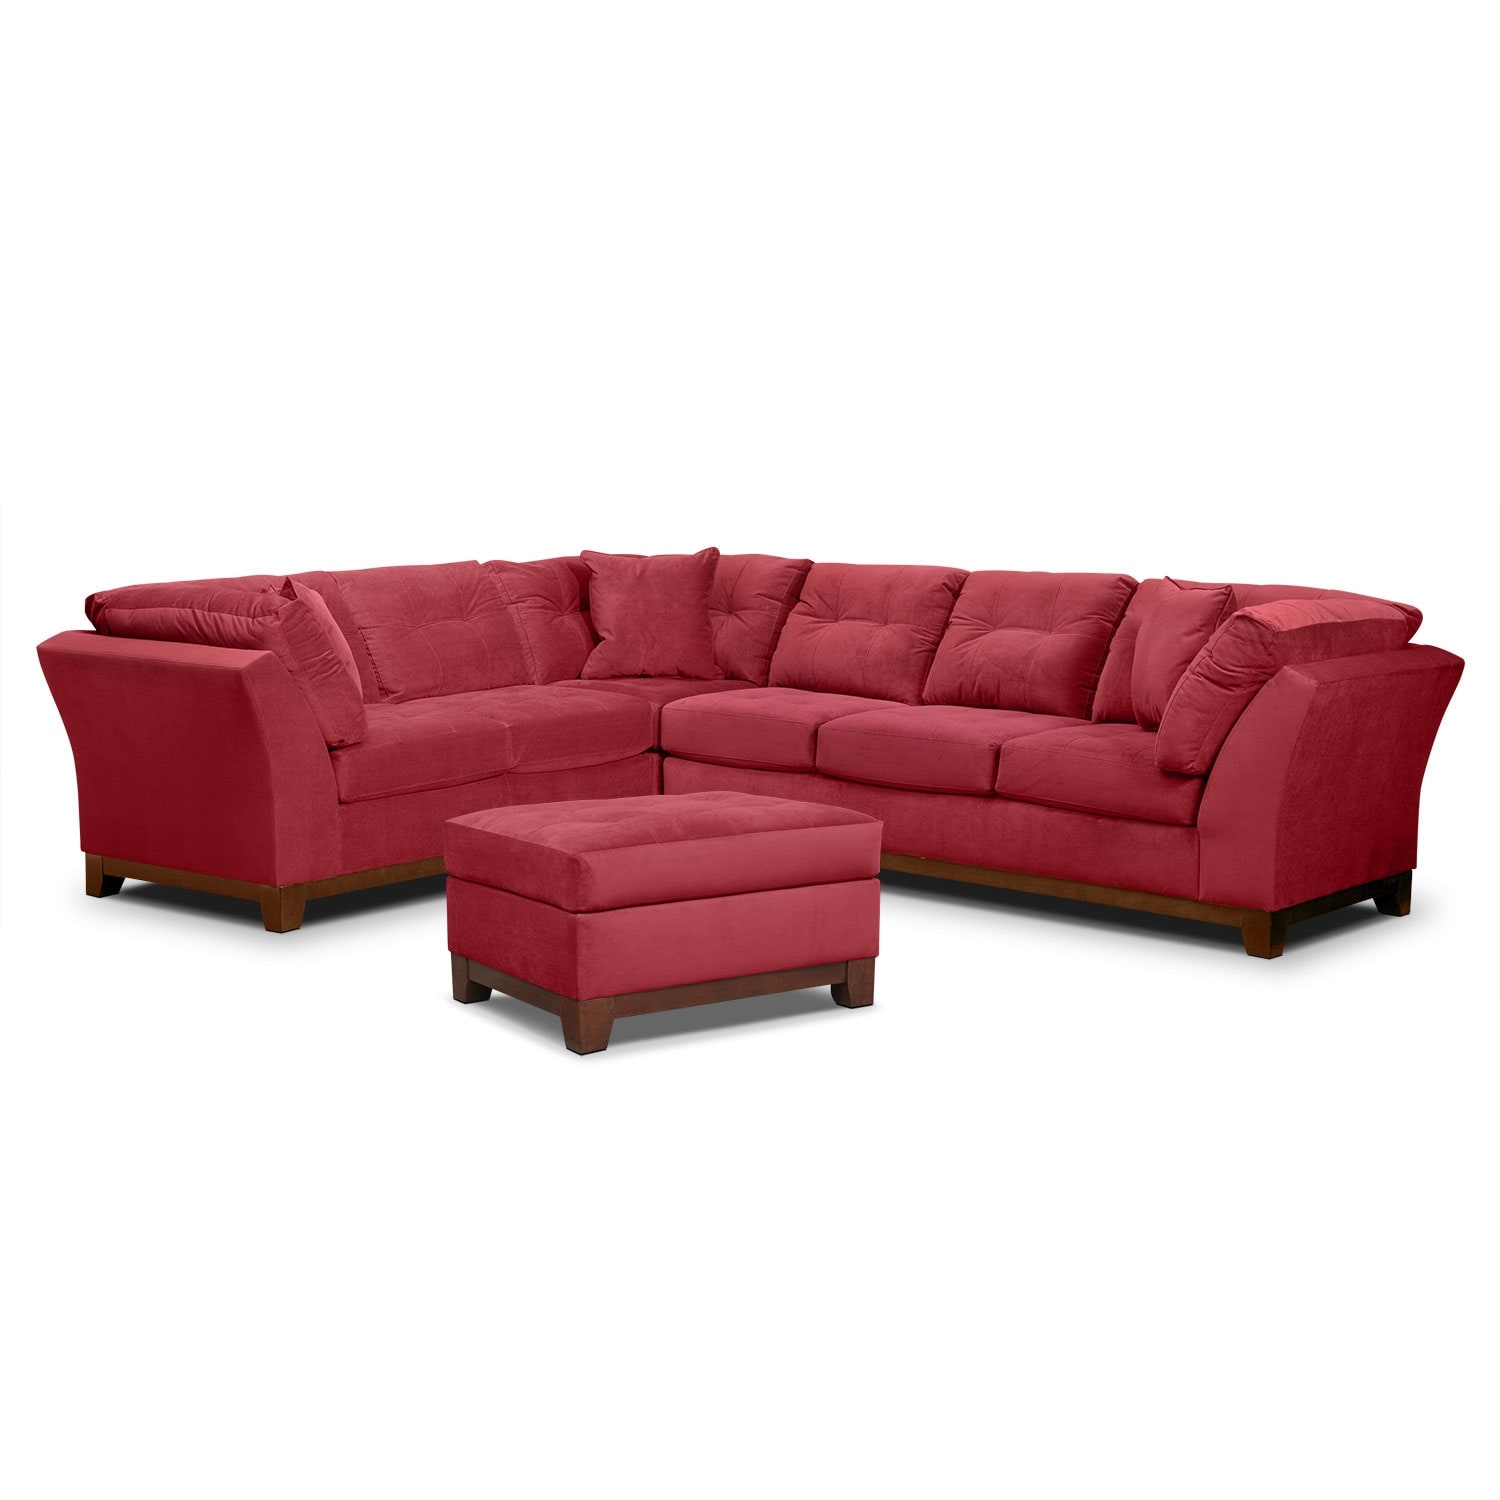 Living Room Furniture - Solace Poppy II 3 Pc. Sectional and Ottoman